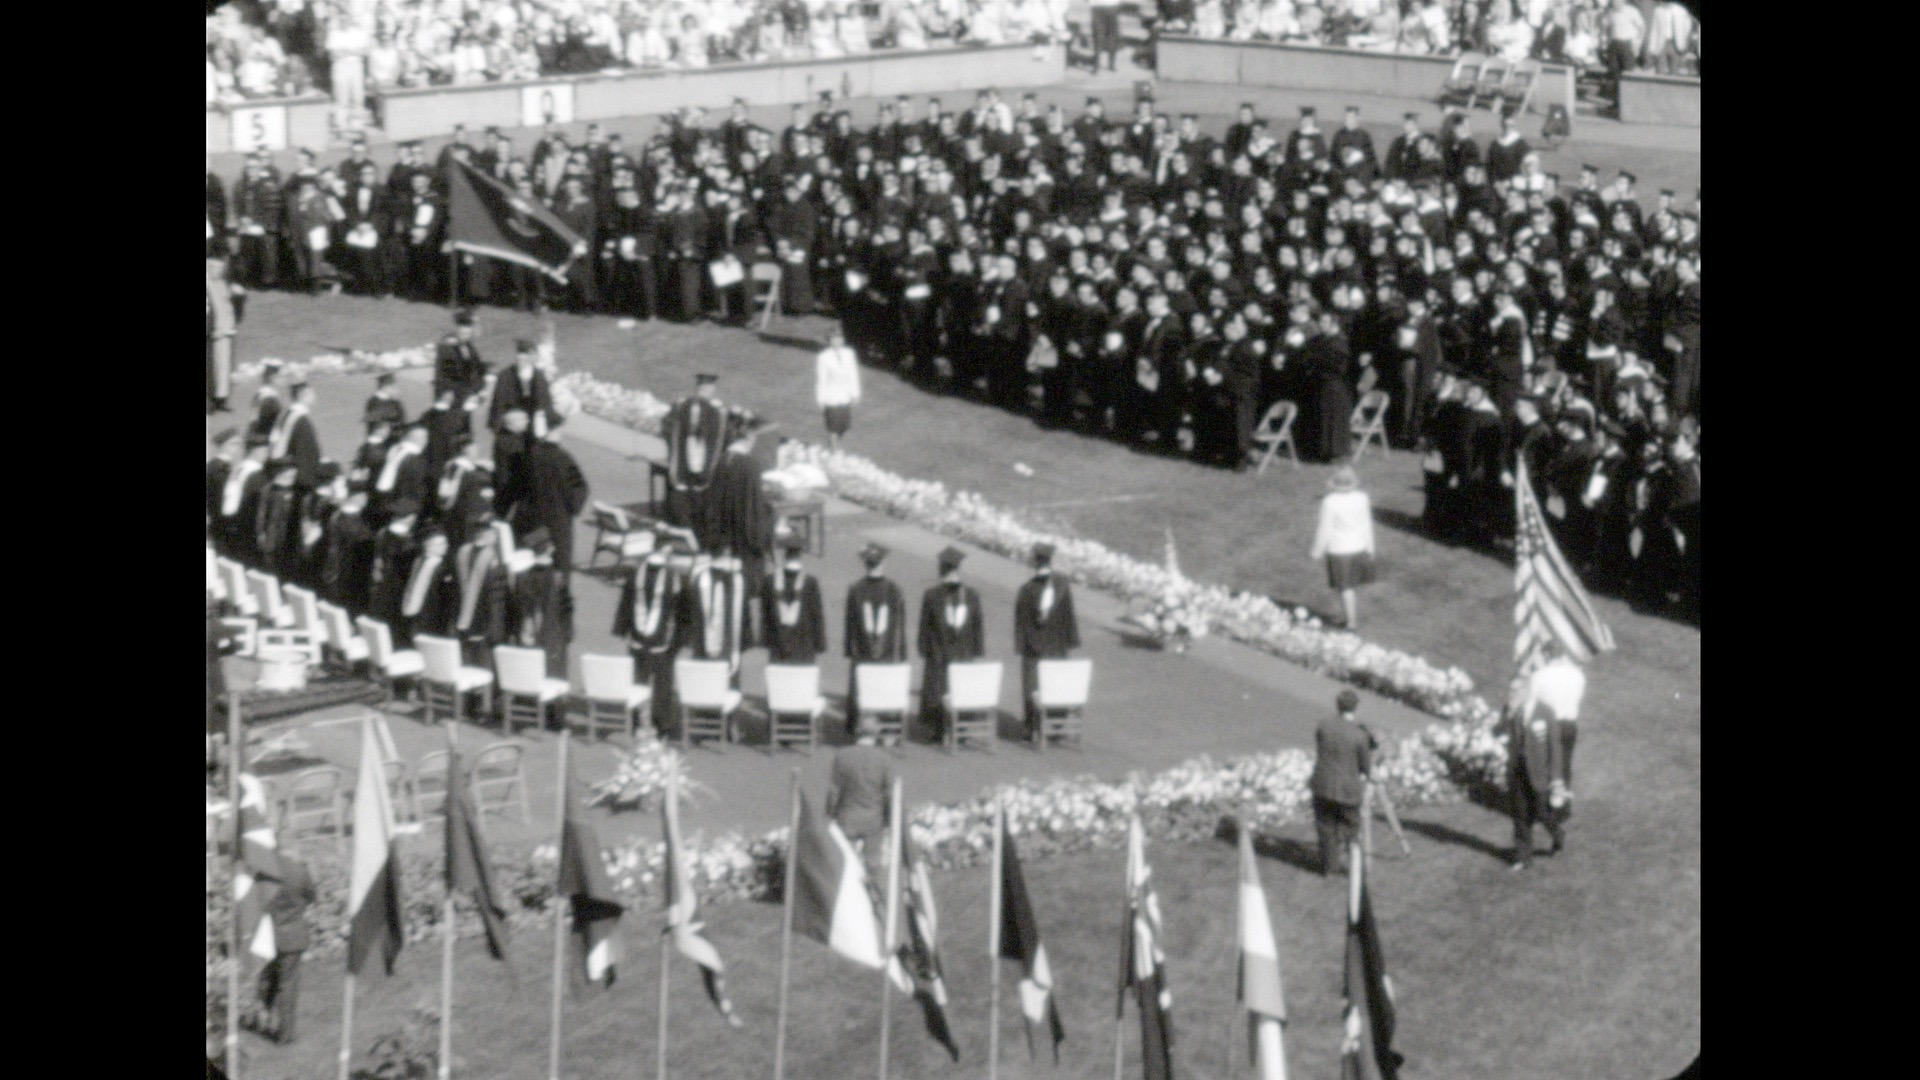 Commencement, Spring 1965